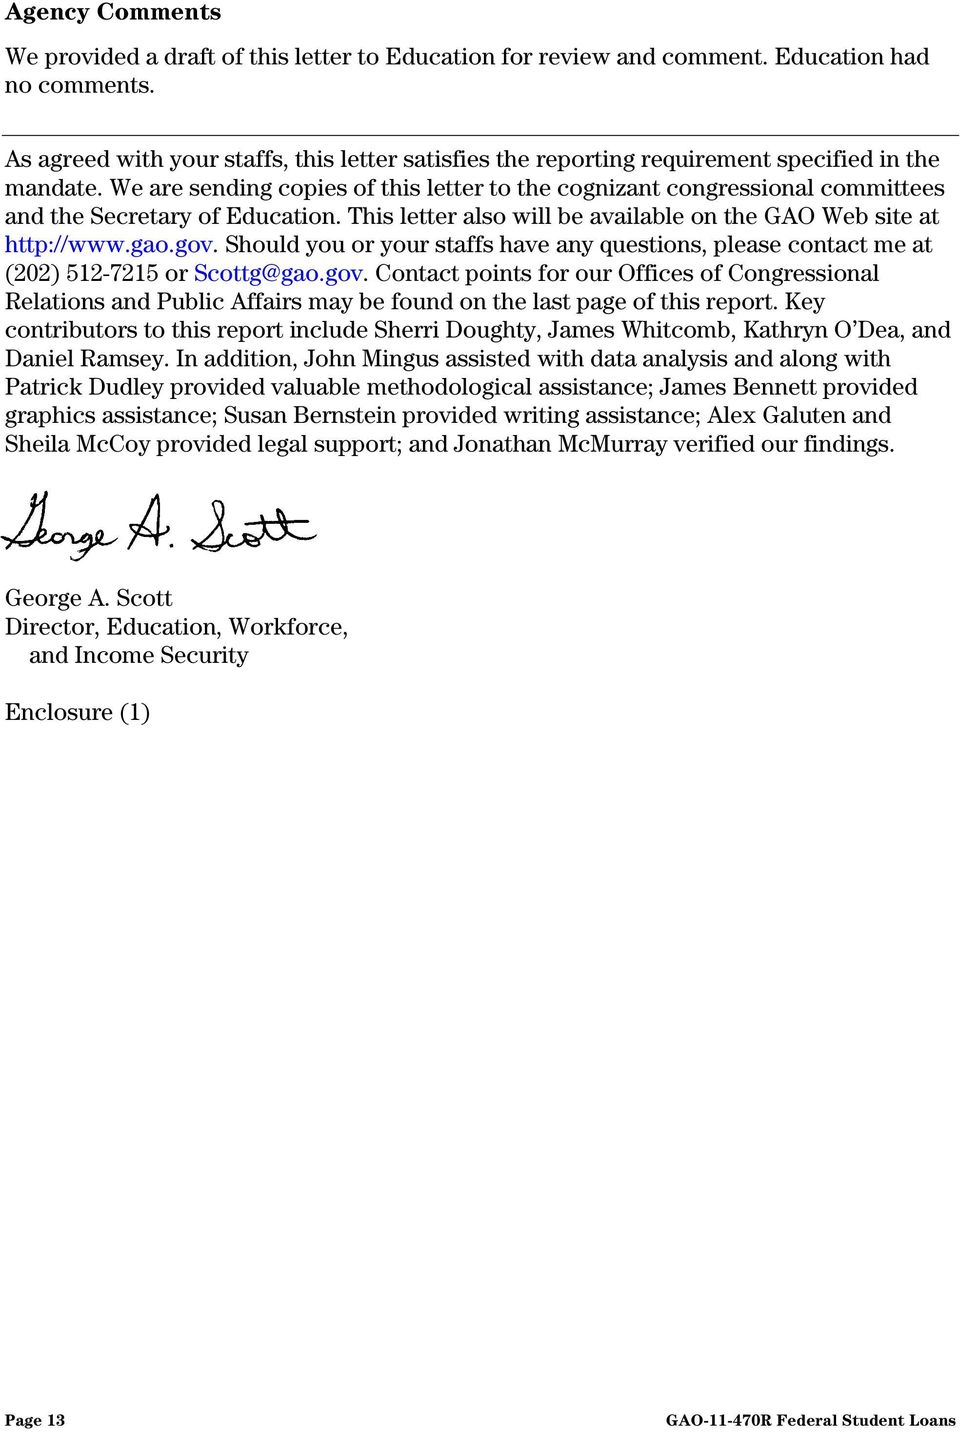 We are sending copies of this letter to the cognizant congressional committees and the Secretary of Education. This letter also will be available on the GAO Web site at http://www.gao.gov.